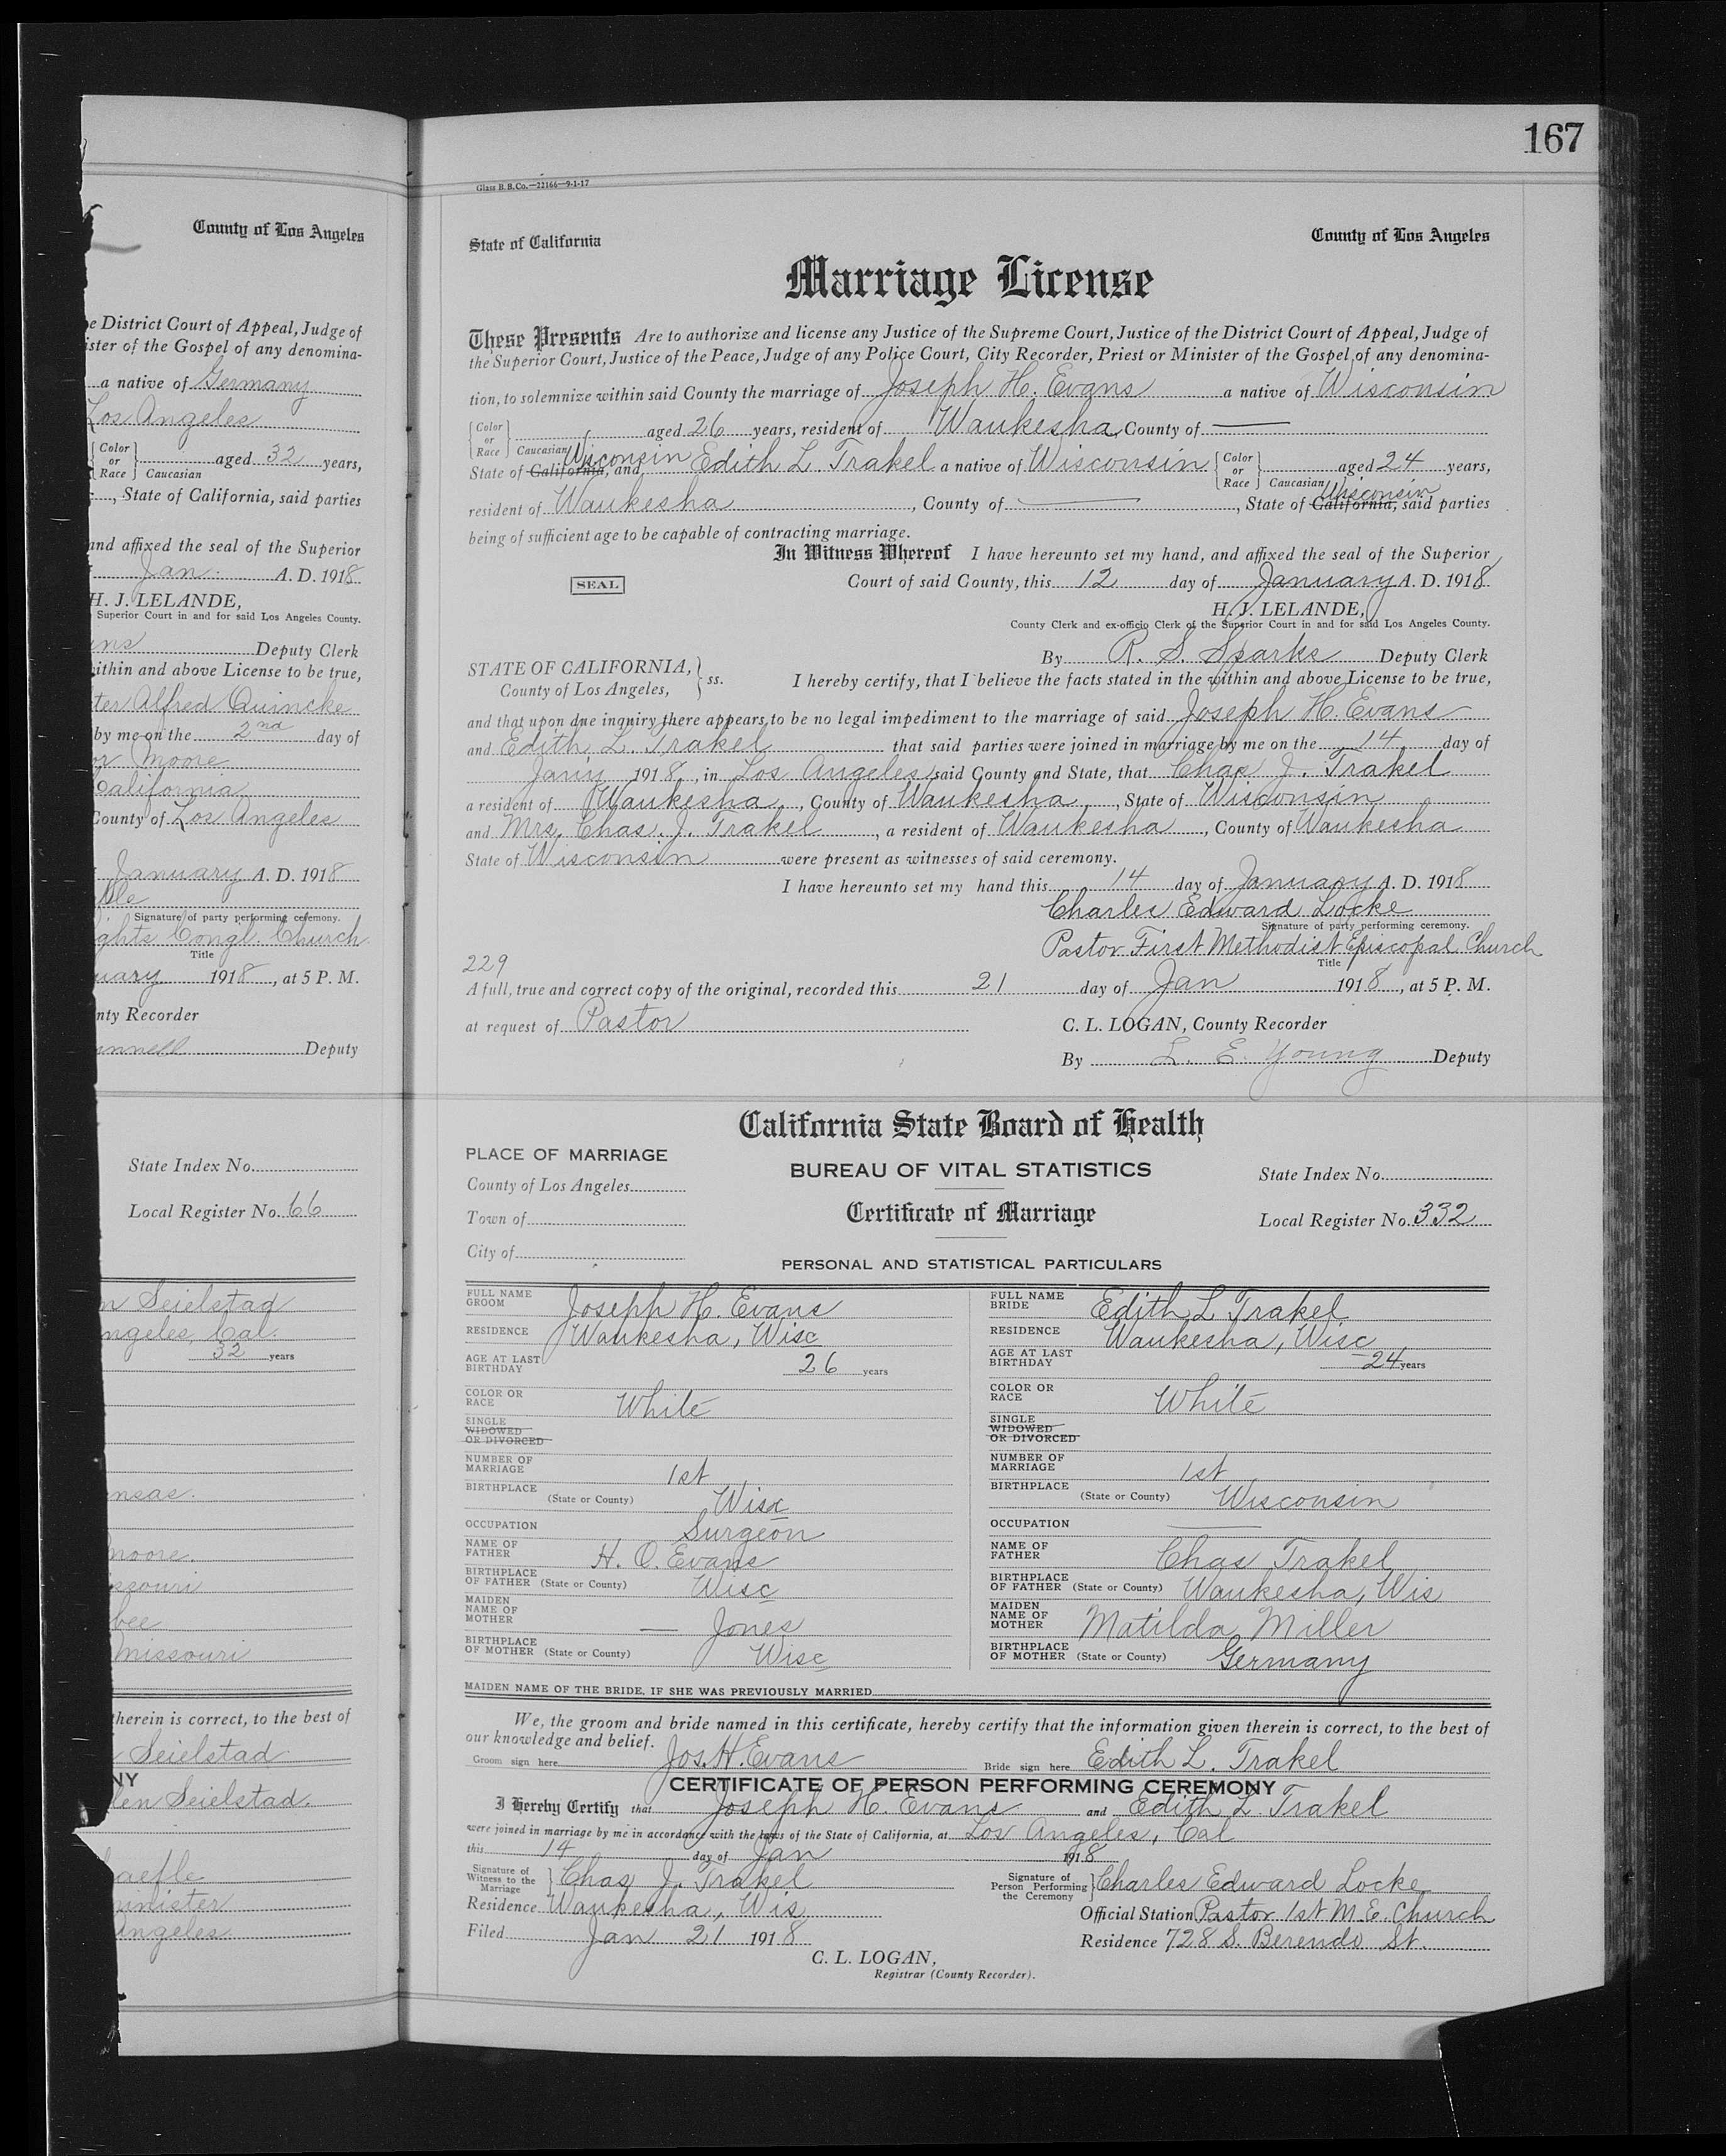 Marriage License for Joseph Evans & Edith Trakel, 1918 in Los Angeles California